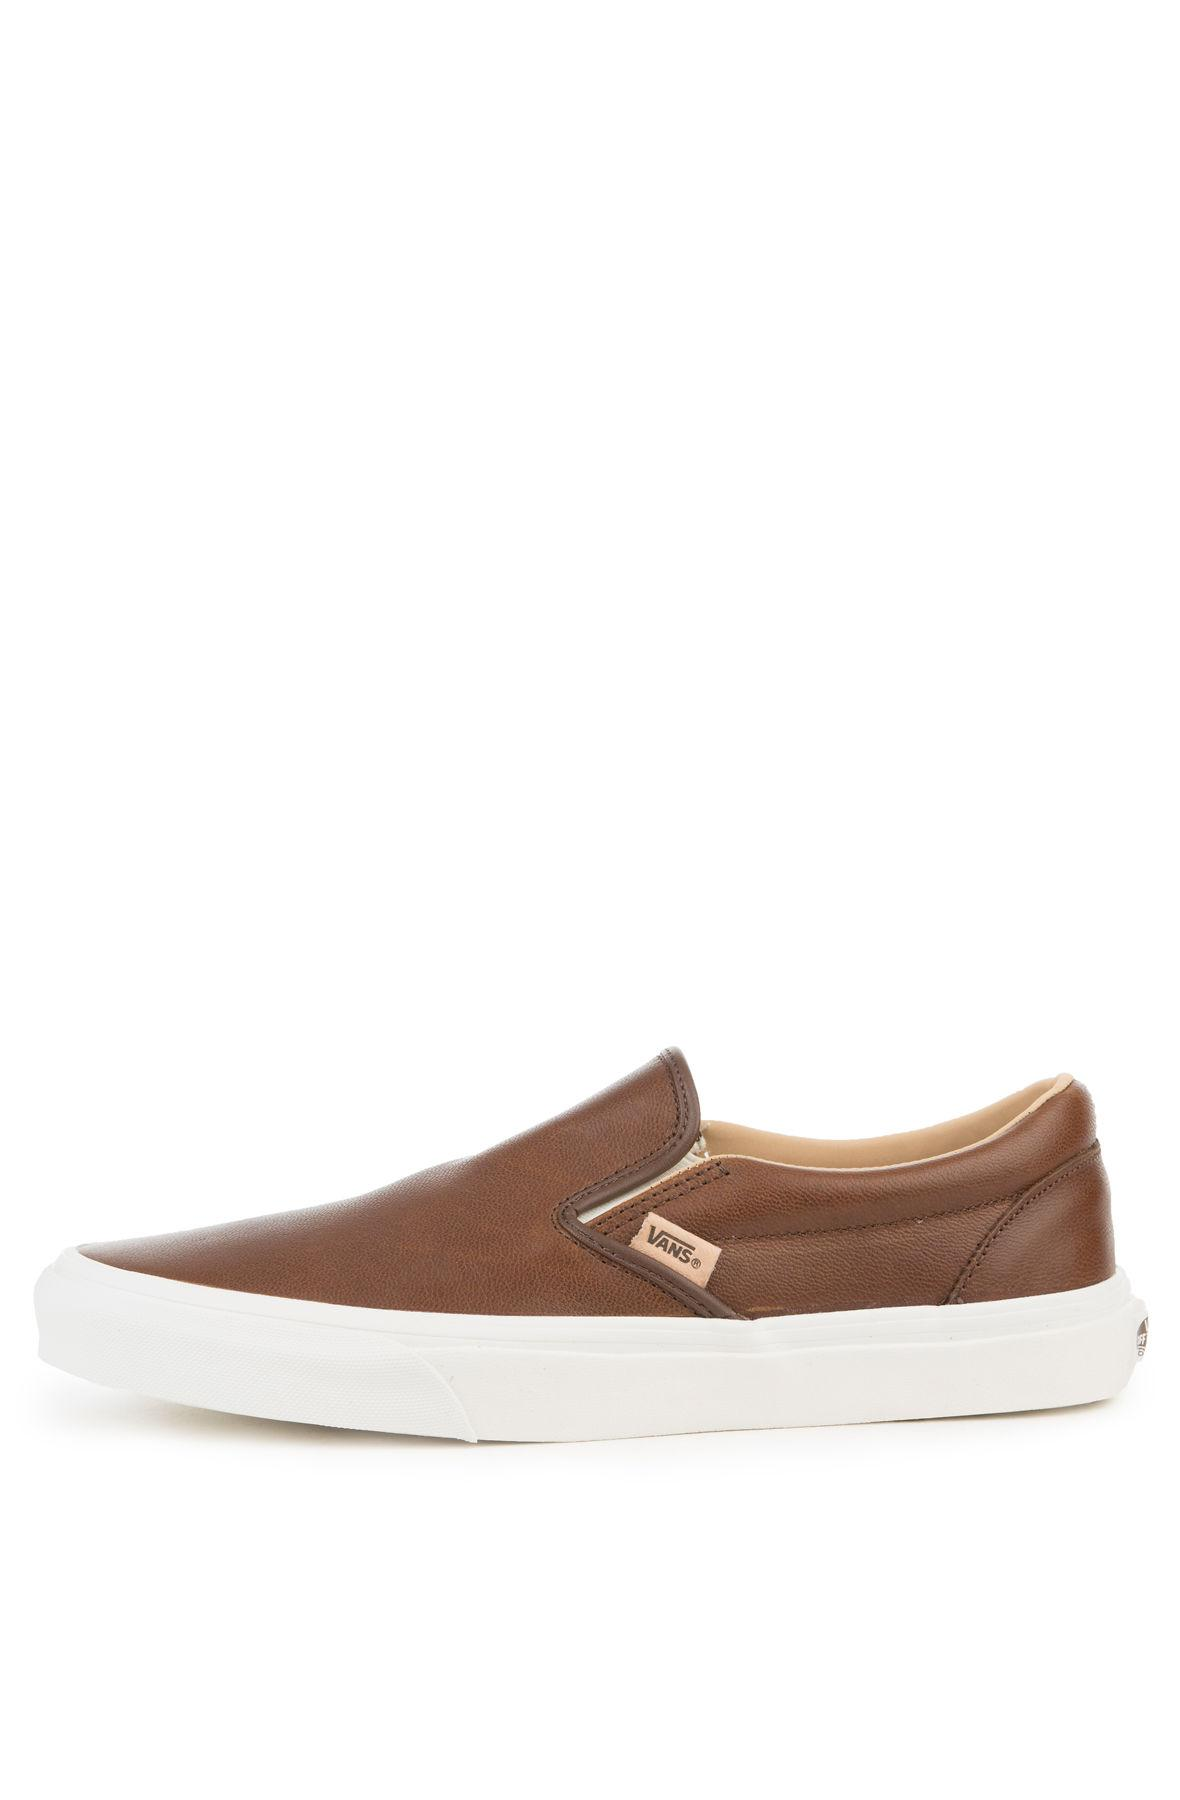 589a042ba0 Lyst - Vans The Classic Slip-on Lux Leather In Shaved Chocolate And ...